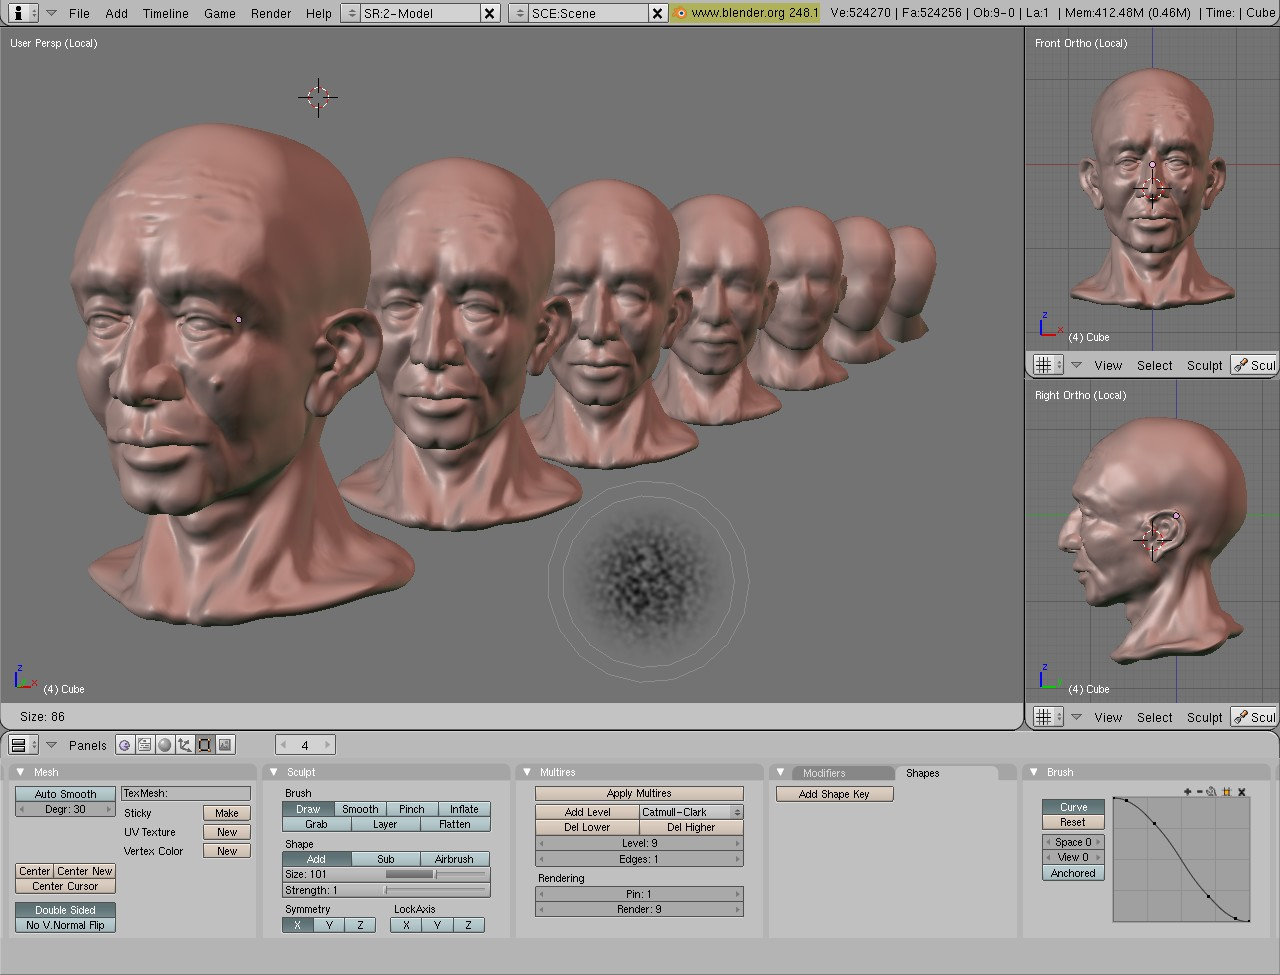 General At Tires >> File:Blender Sculpt and Multires.jpg - Wikimedia Commons